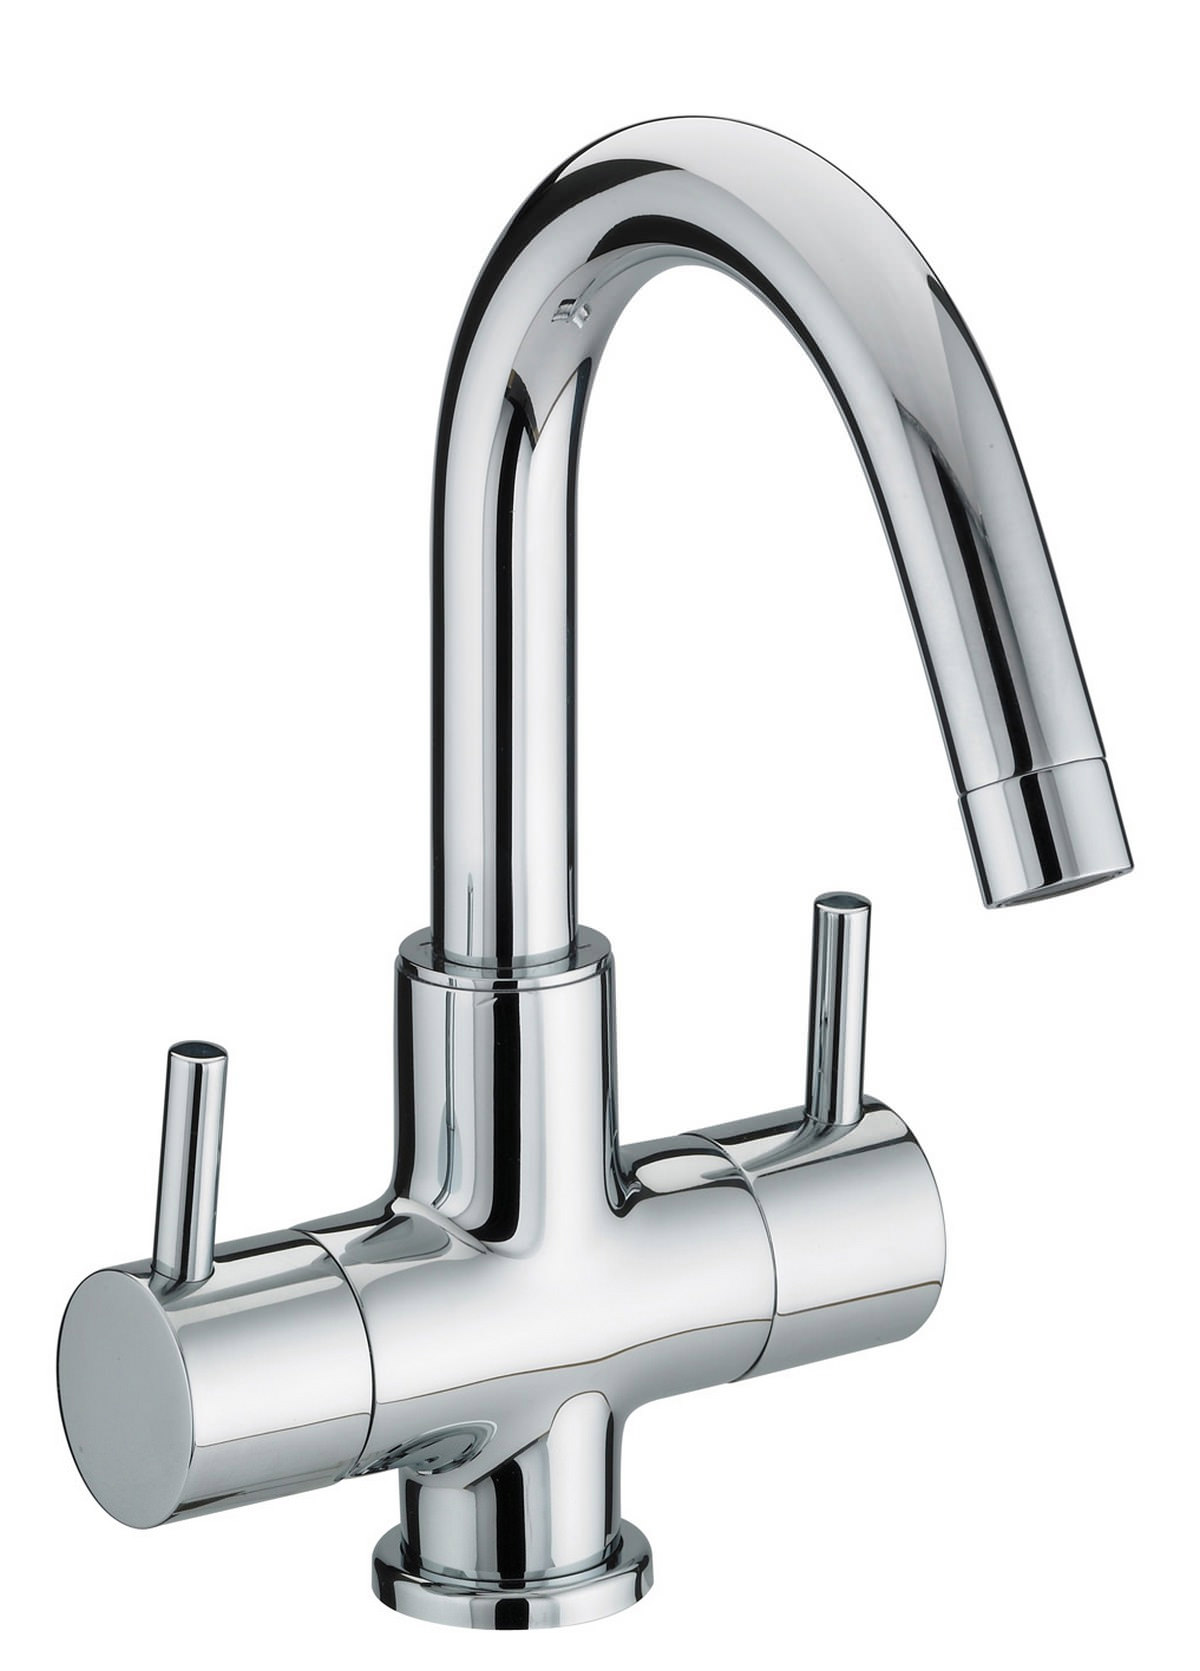 Bristan prism 2 handle basin mixer tap with swivel spout for Bathroom taps